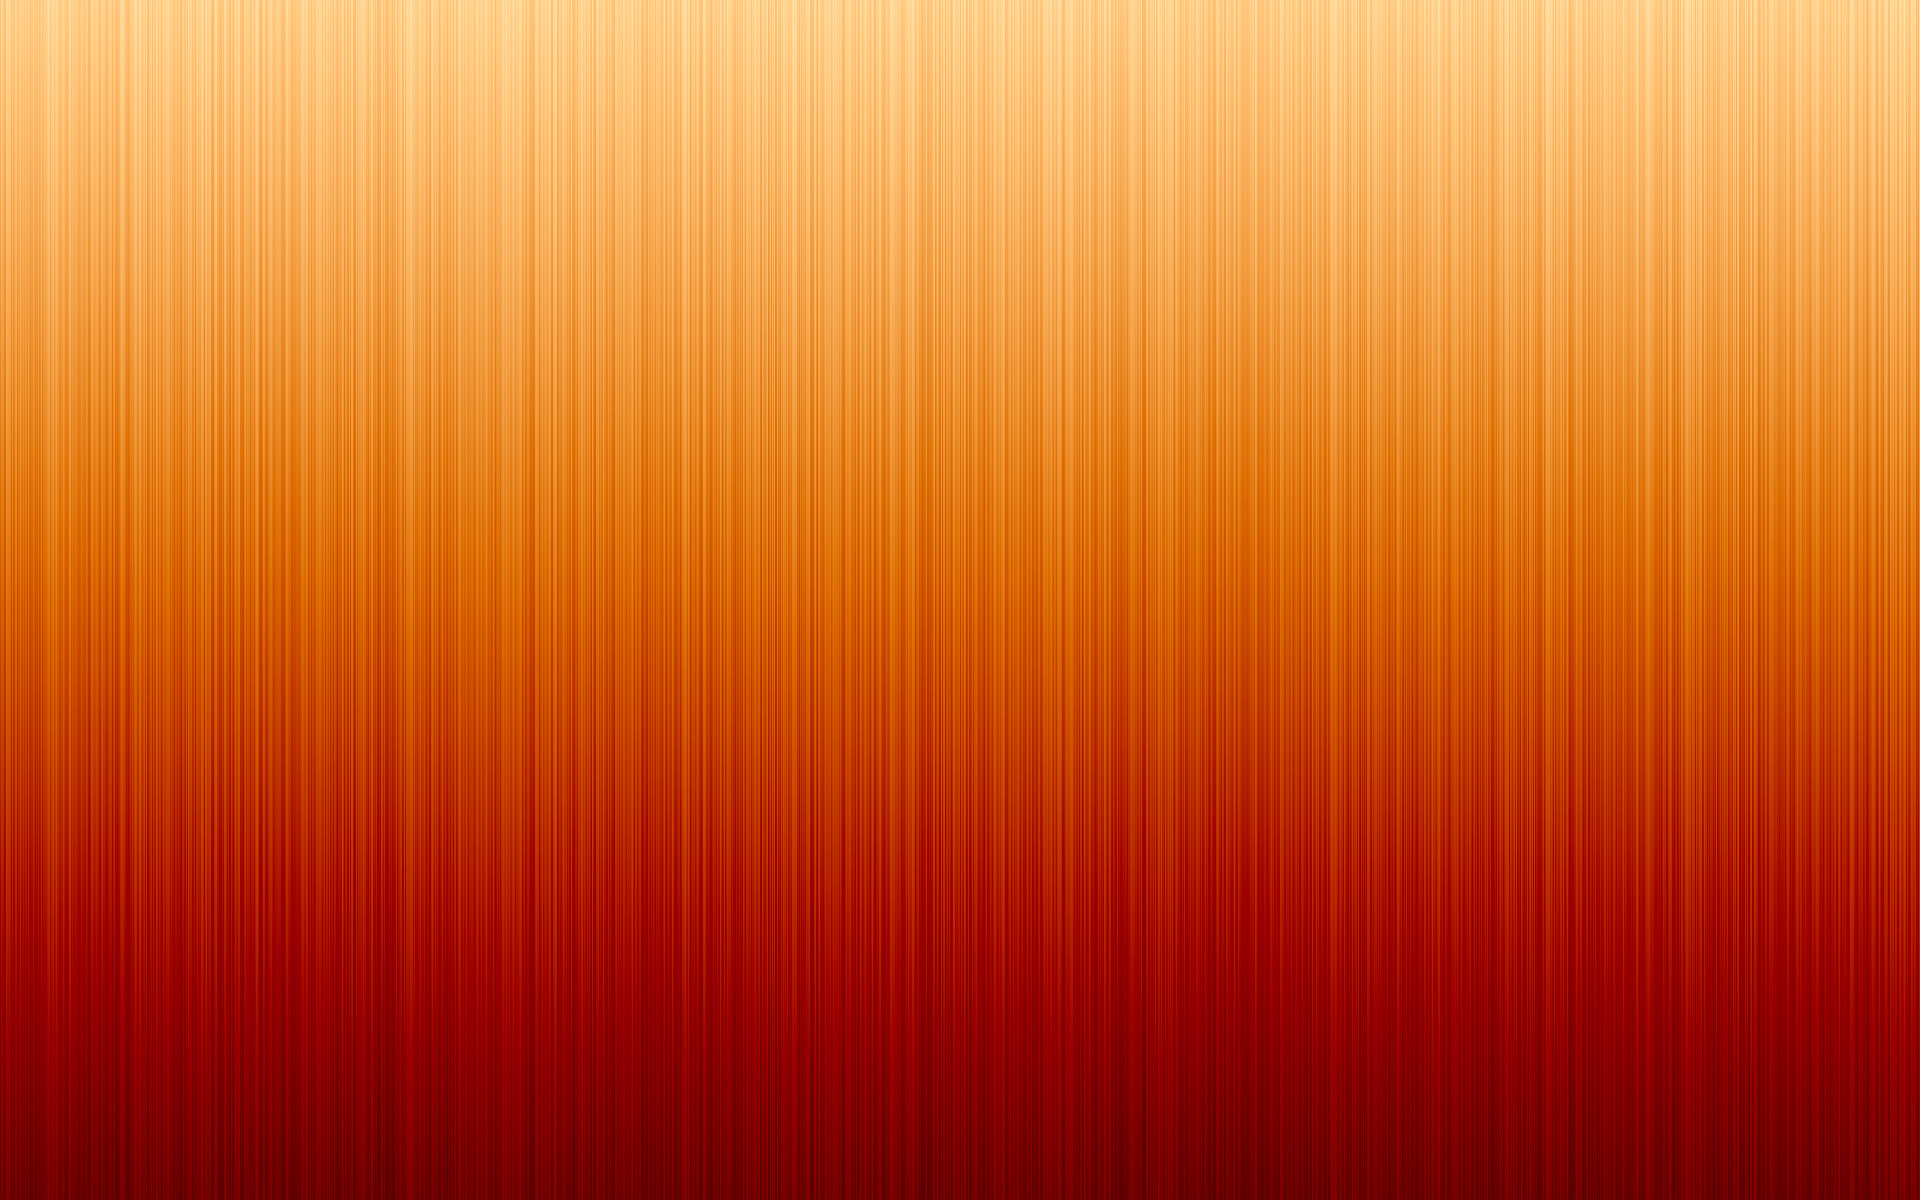 1920x1200 Orange Wallpaper 20